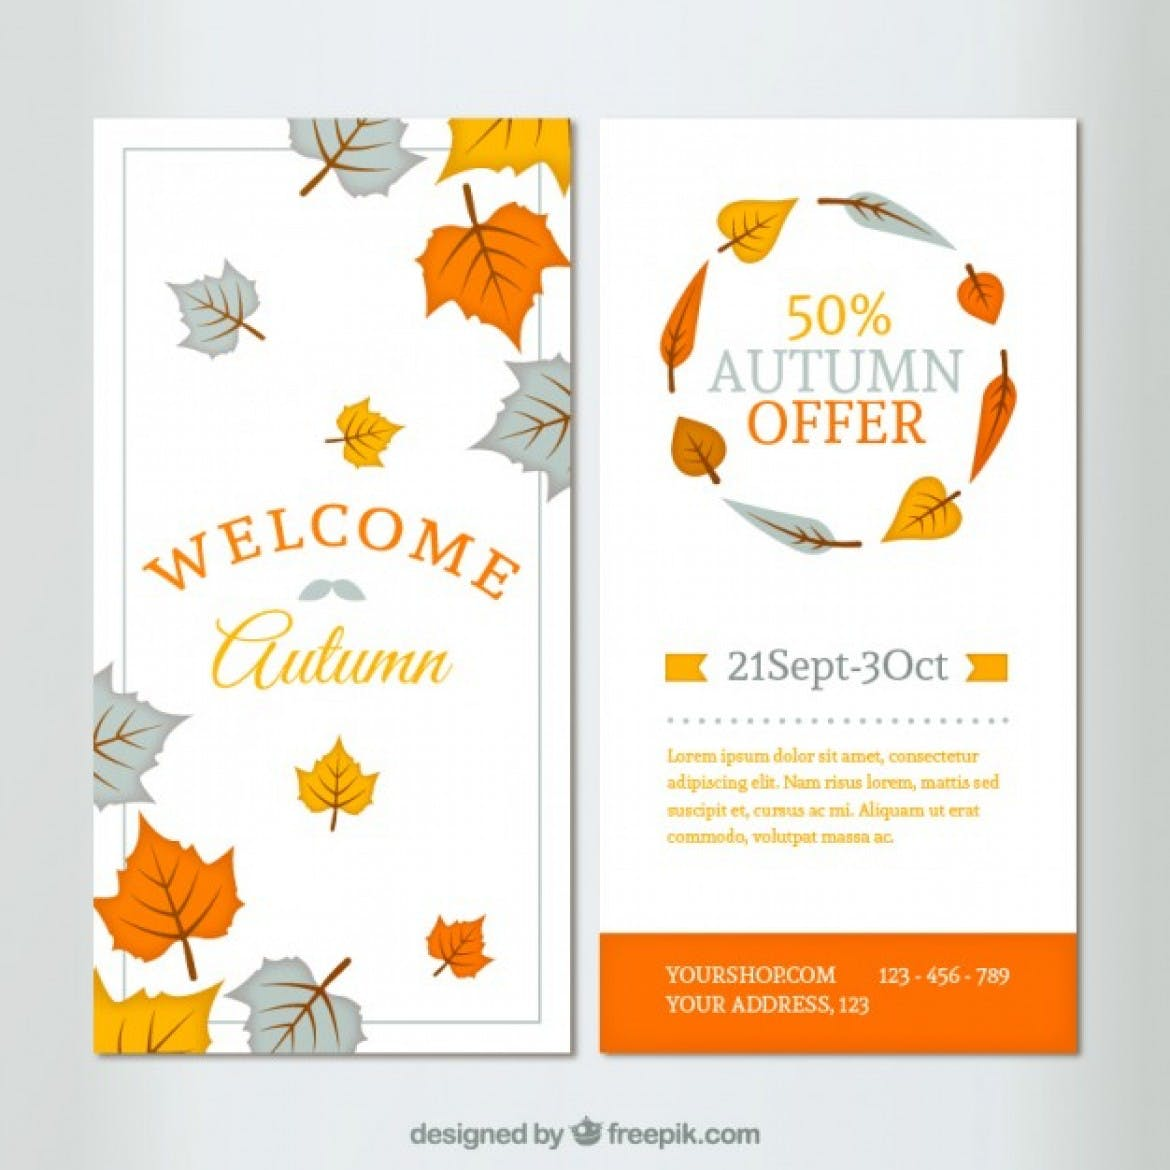 wpid-welcome-autumn-banners_23-2147520978-1170x1170